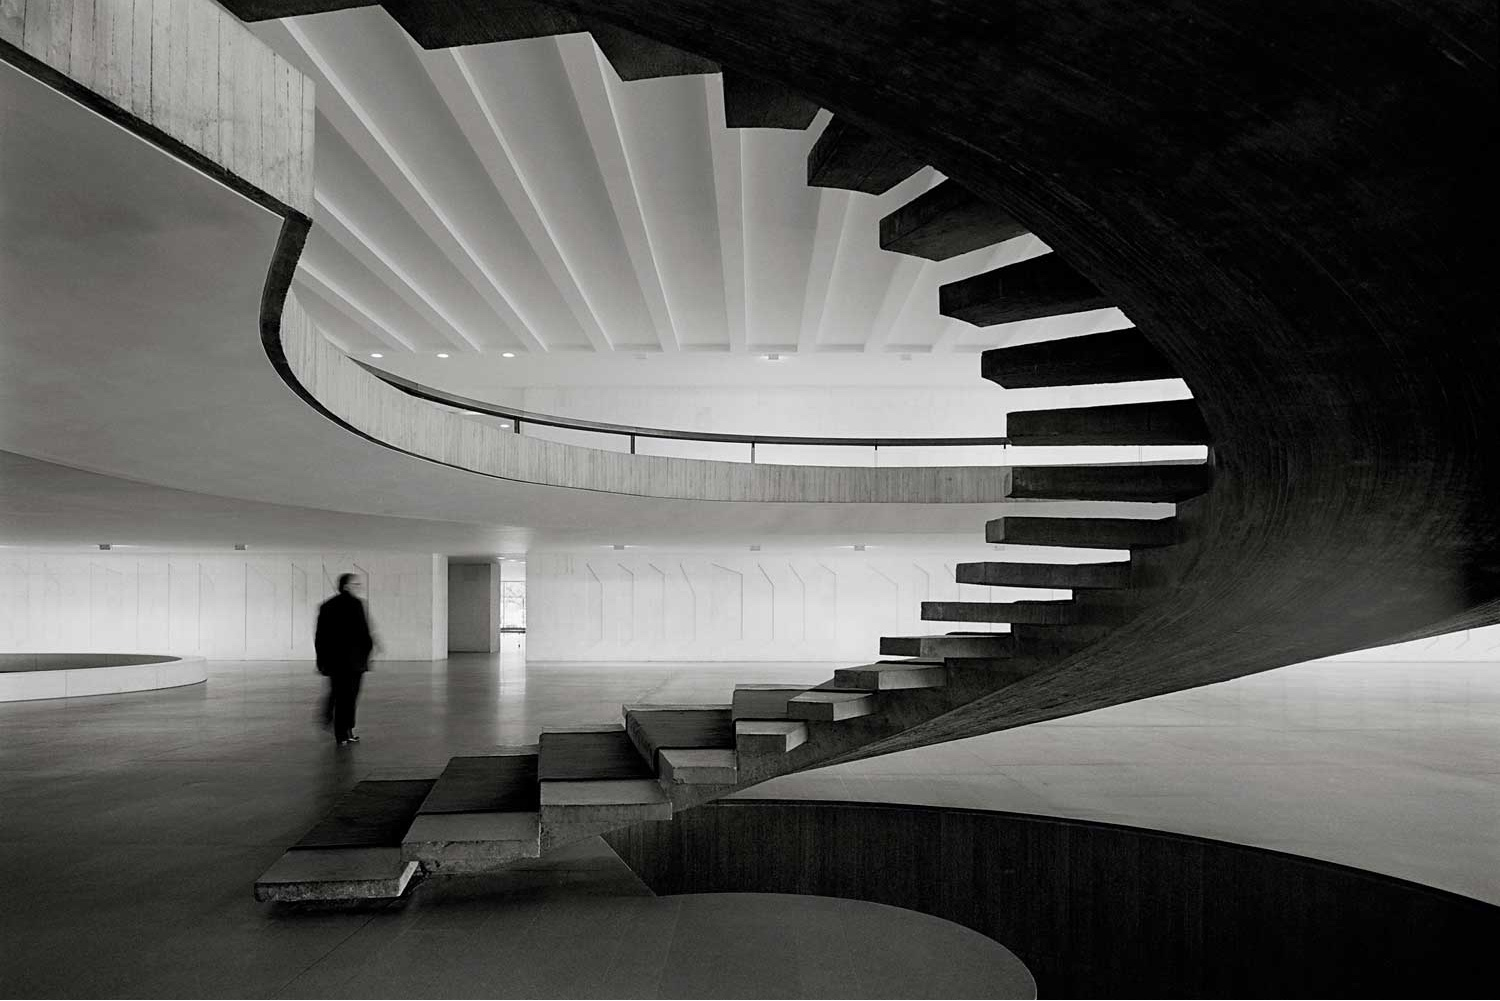 Spiral staircase in the Palácio do Itamaraty. Photo by Cristiano Mascaro via Yellowtrace.